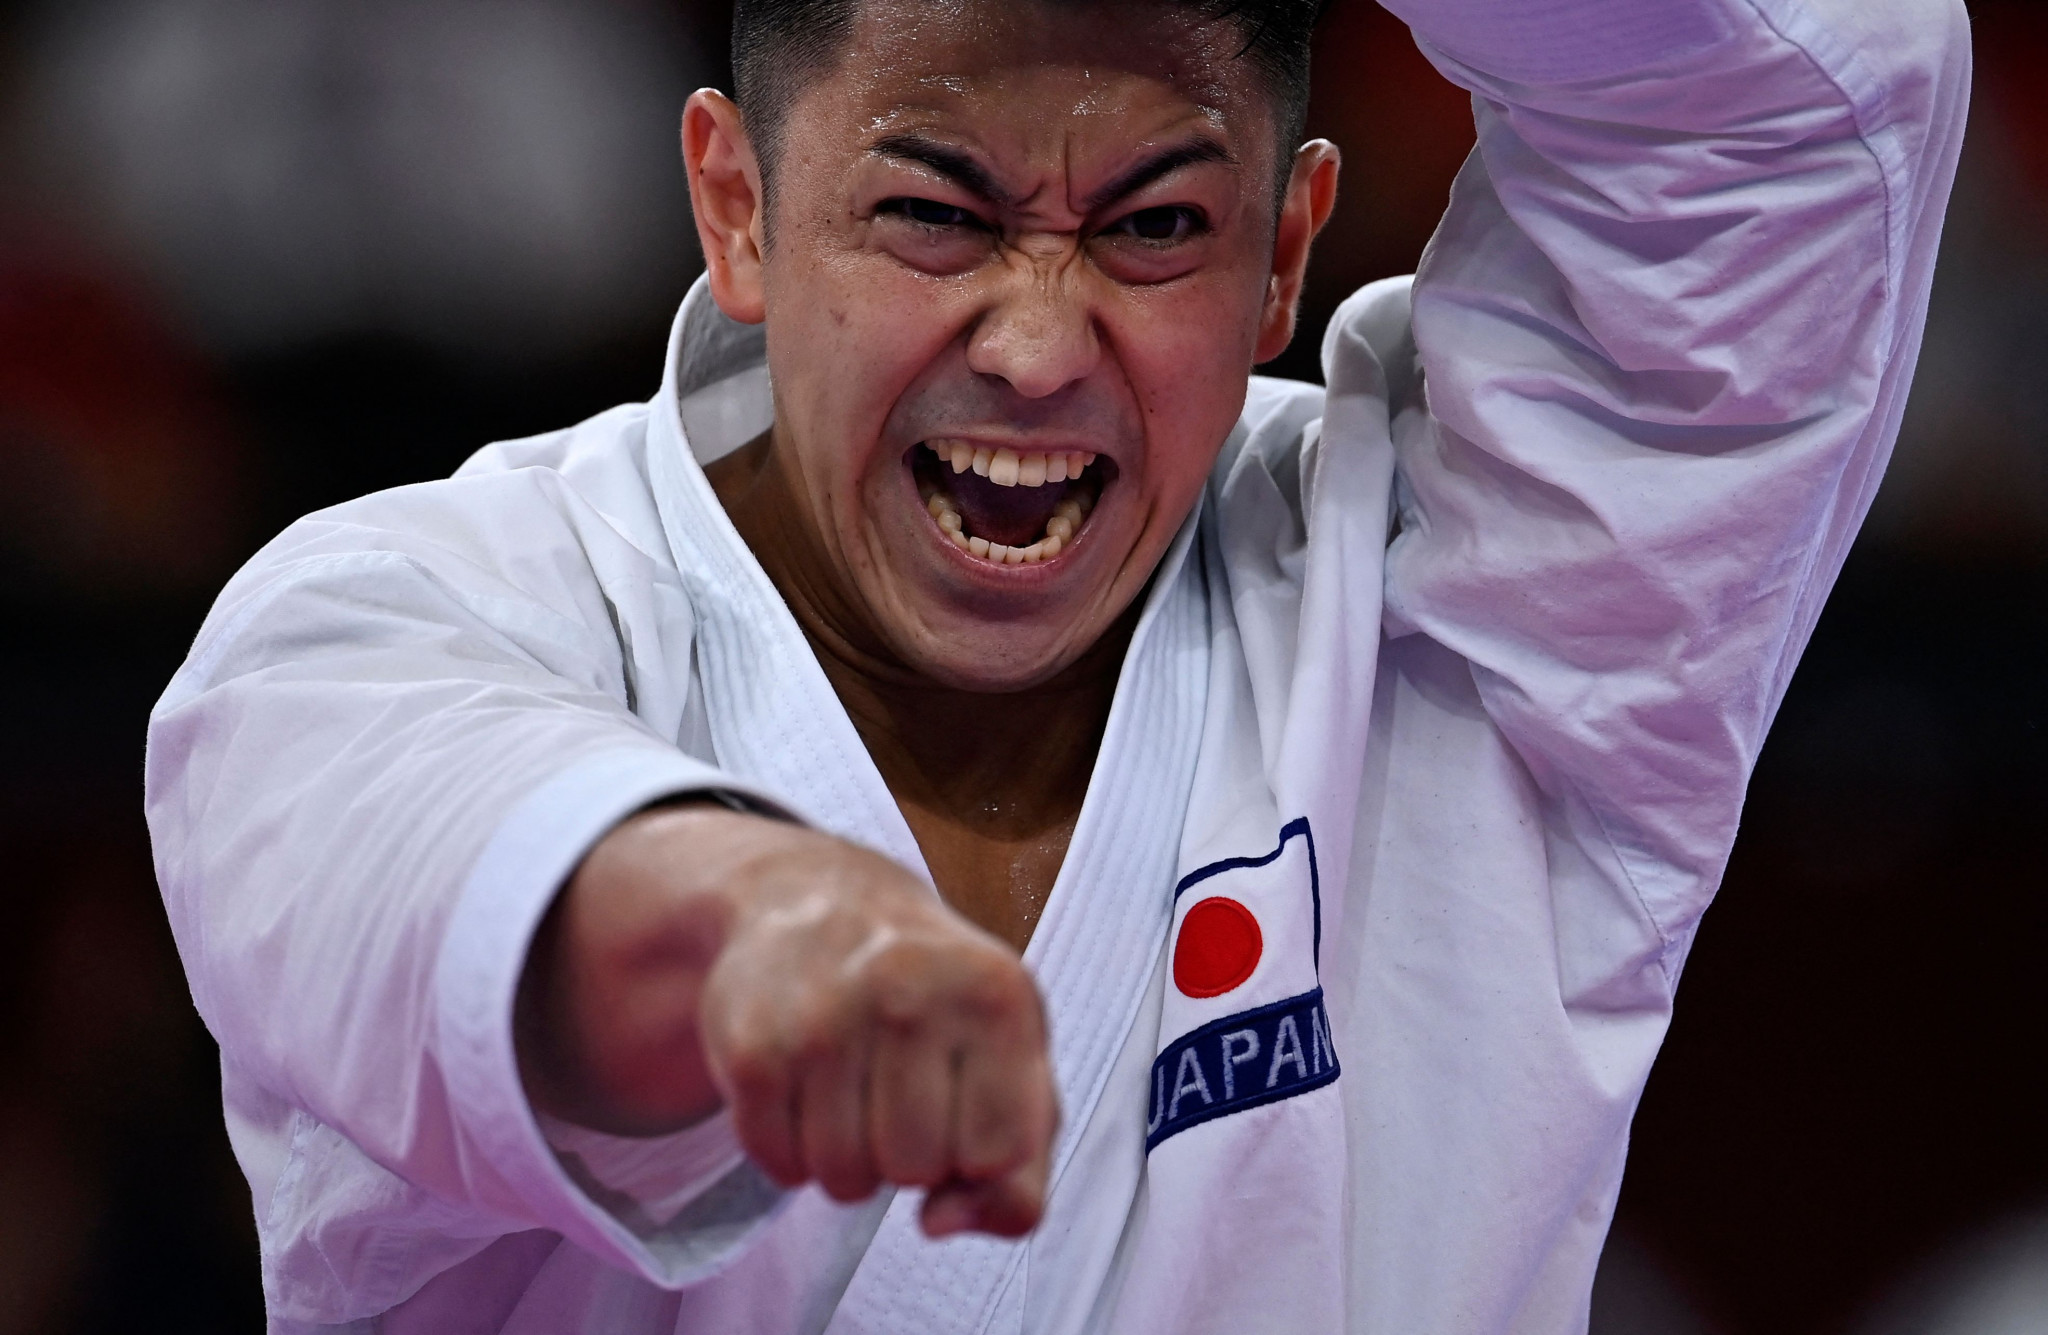 World Karate Federation Athletes' Commission election to be held in Dubai